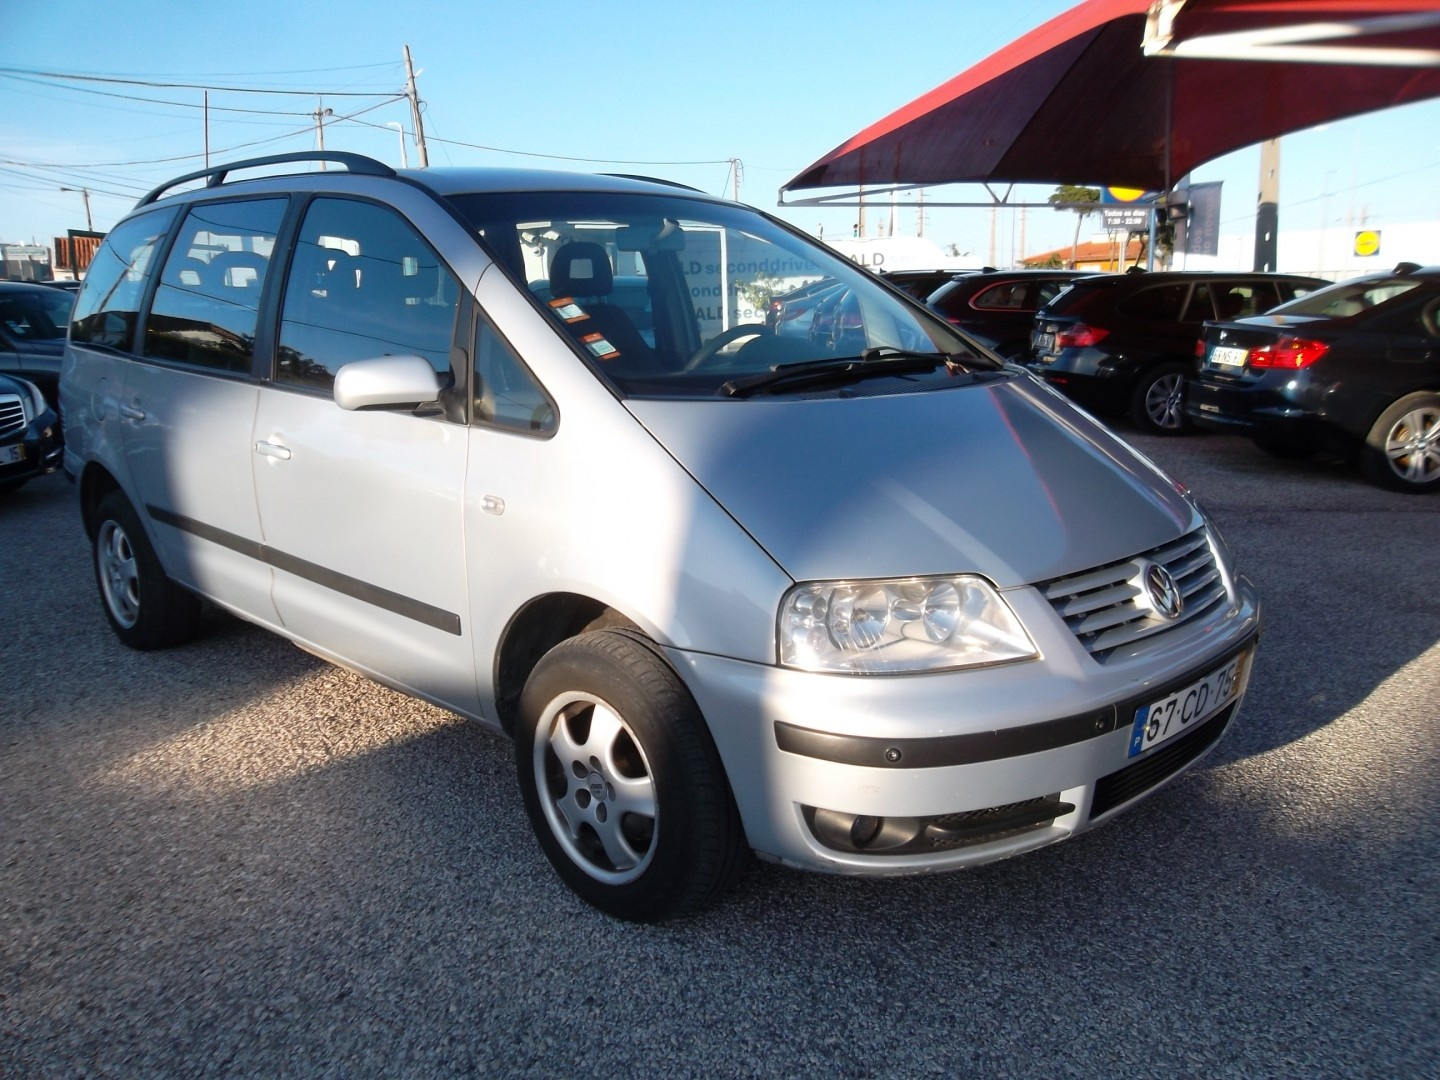 Vw Sharan 1.9 TDI CONFORLINE